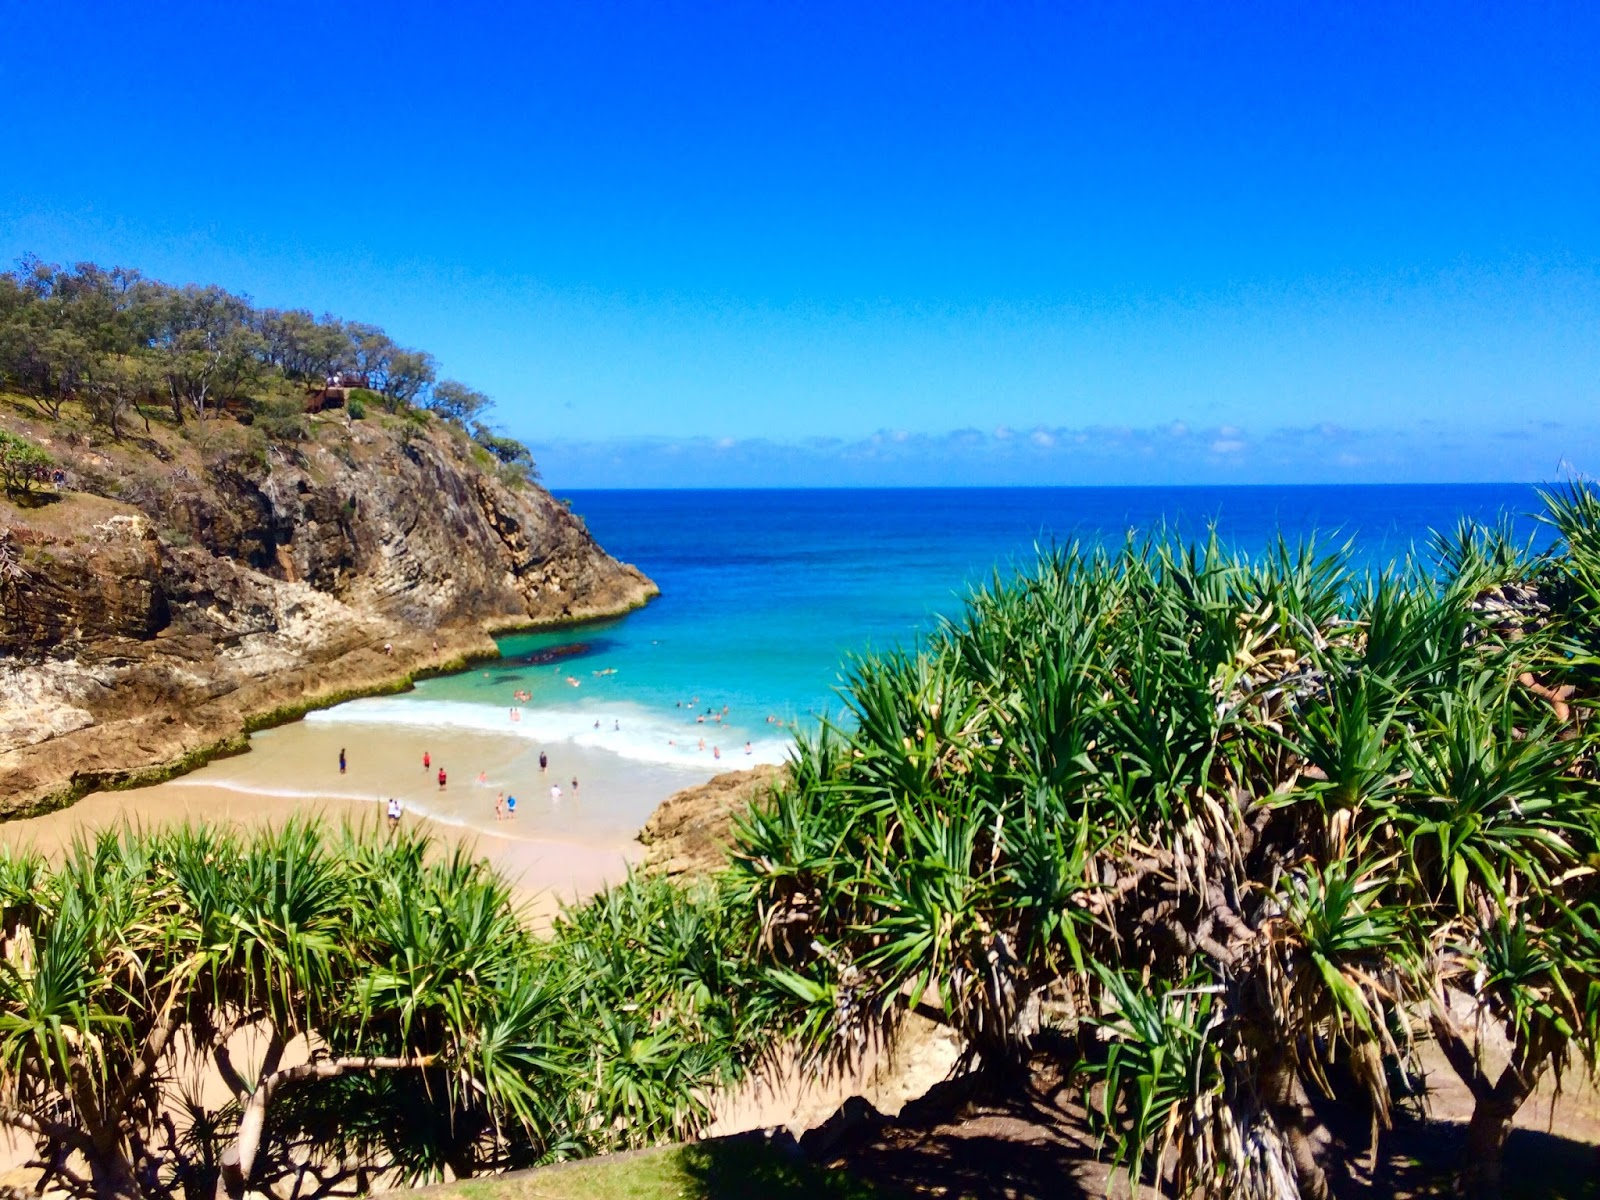 Main Beach North Stradbroke Island Queensland Australia